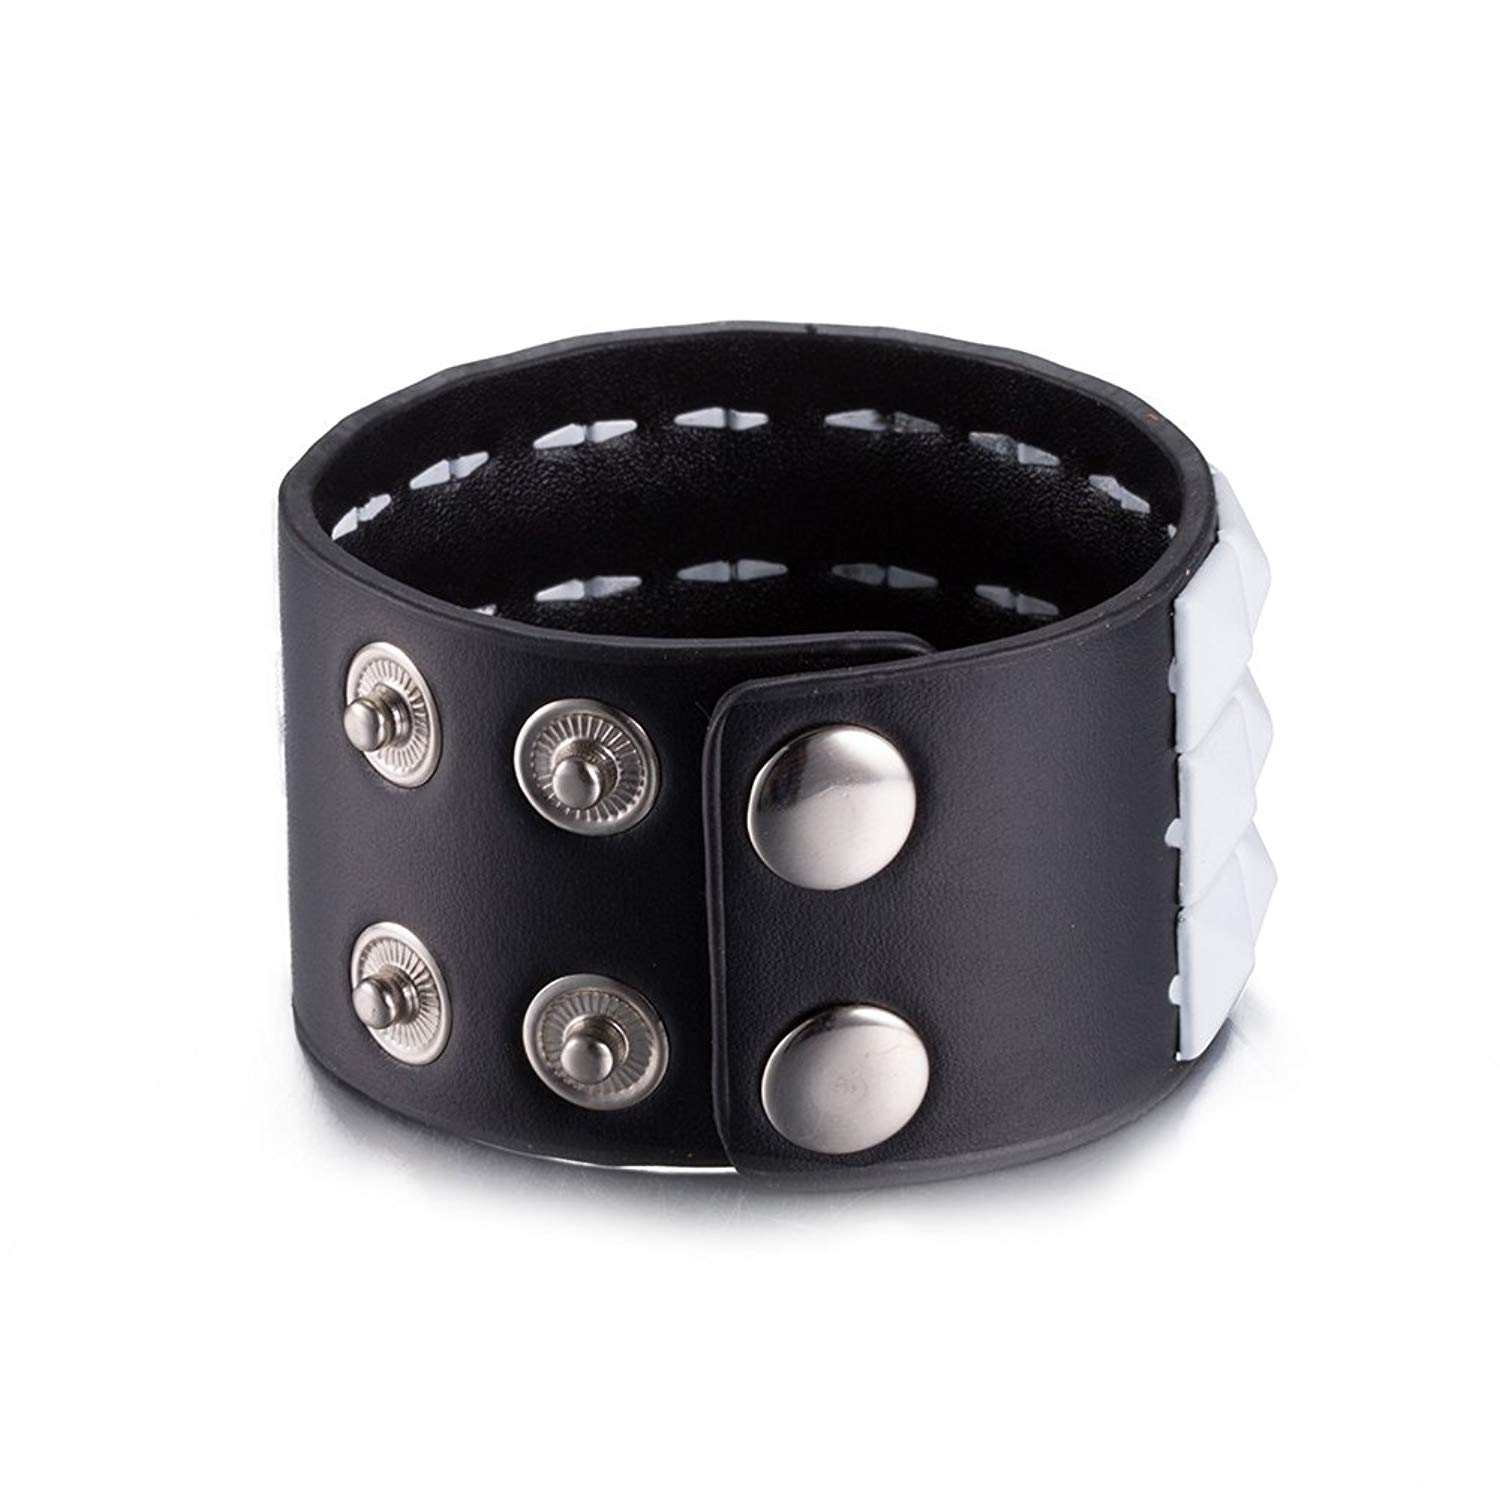 Fashion Unisex Charms Jewelry Plate With Silver Leather Popular Square Rope Chain Bracelets